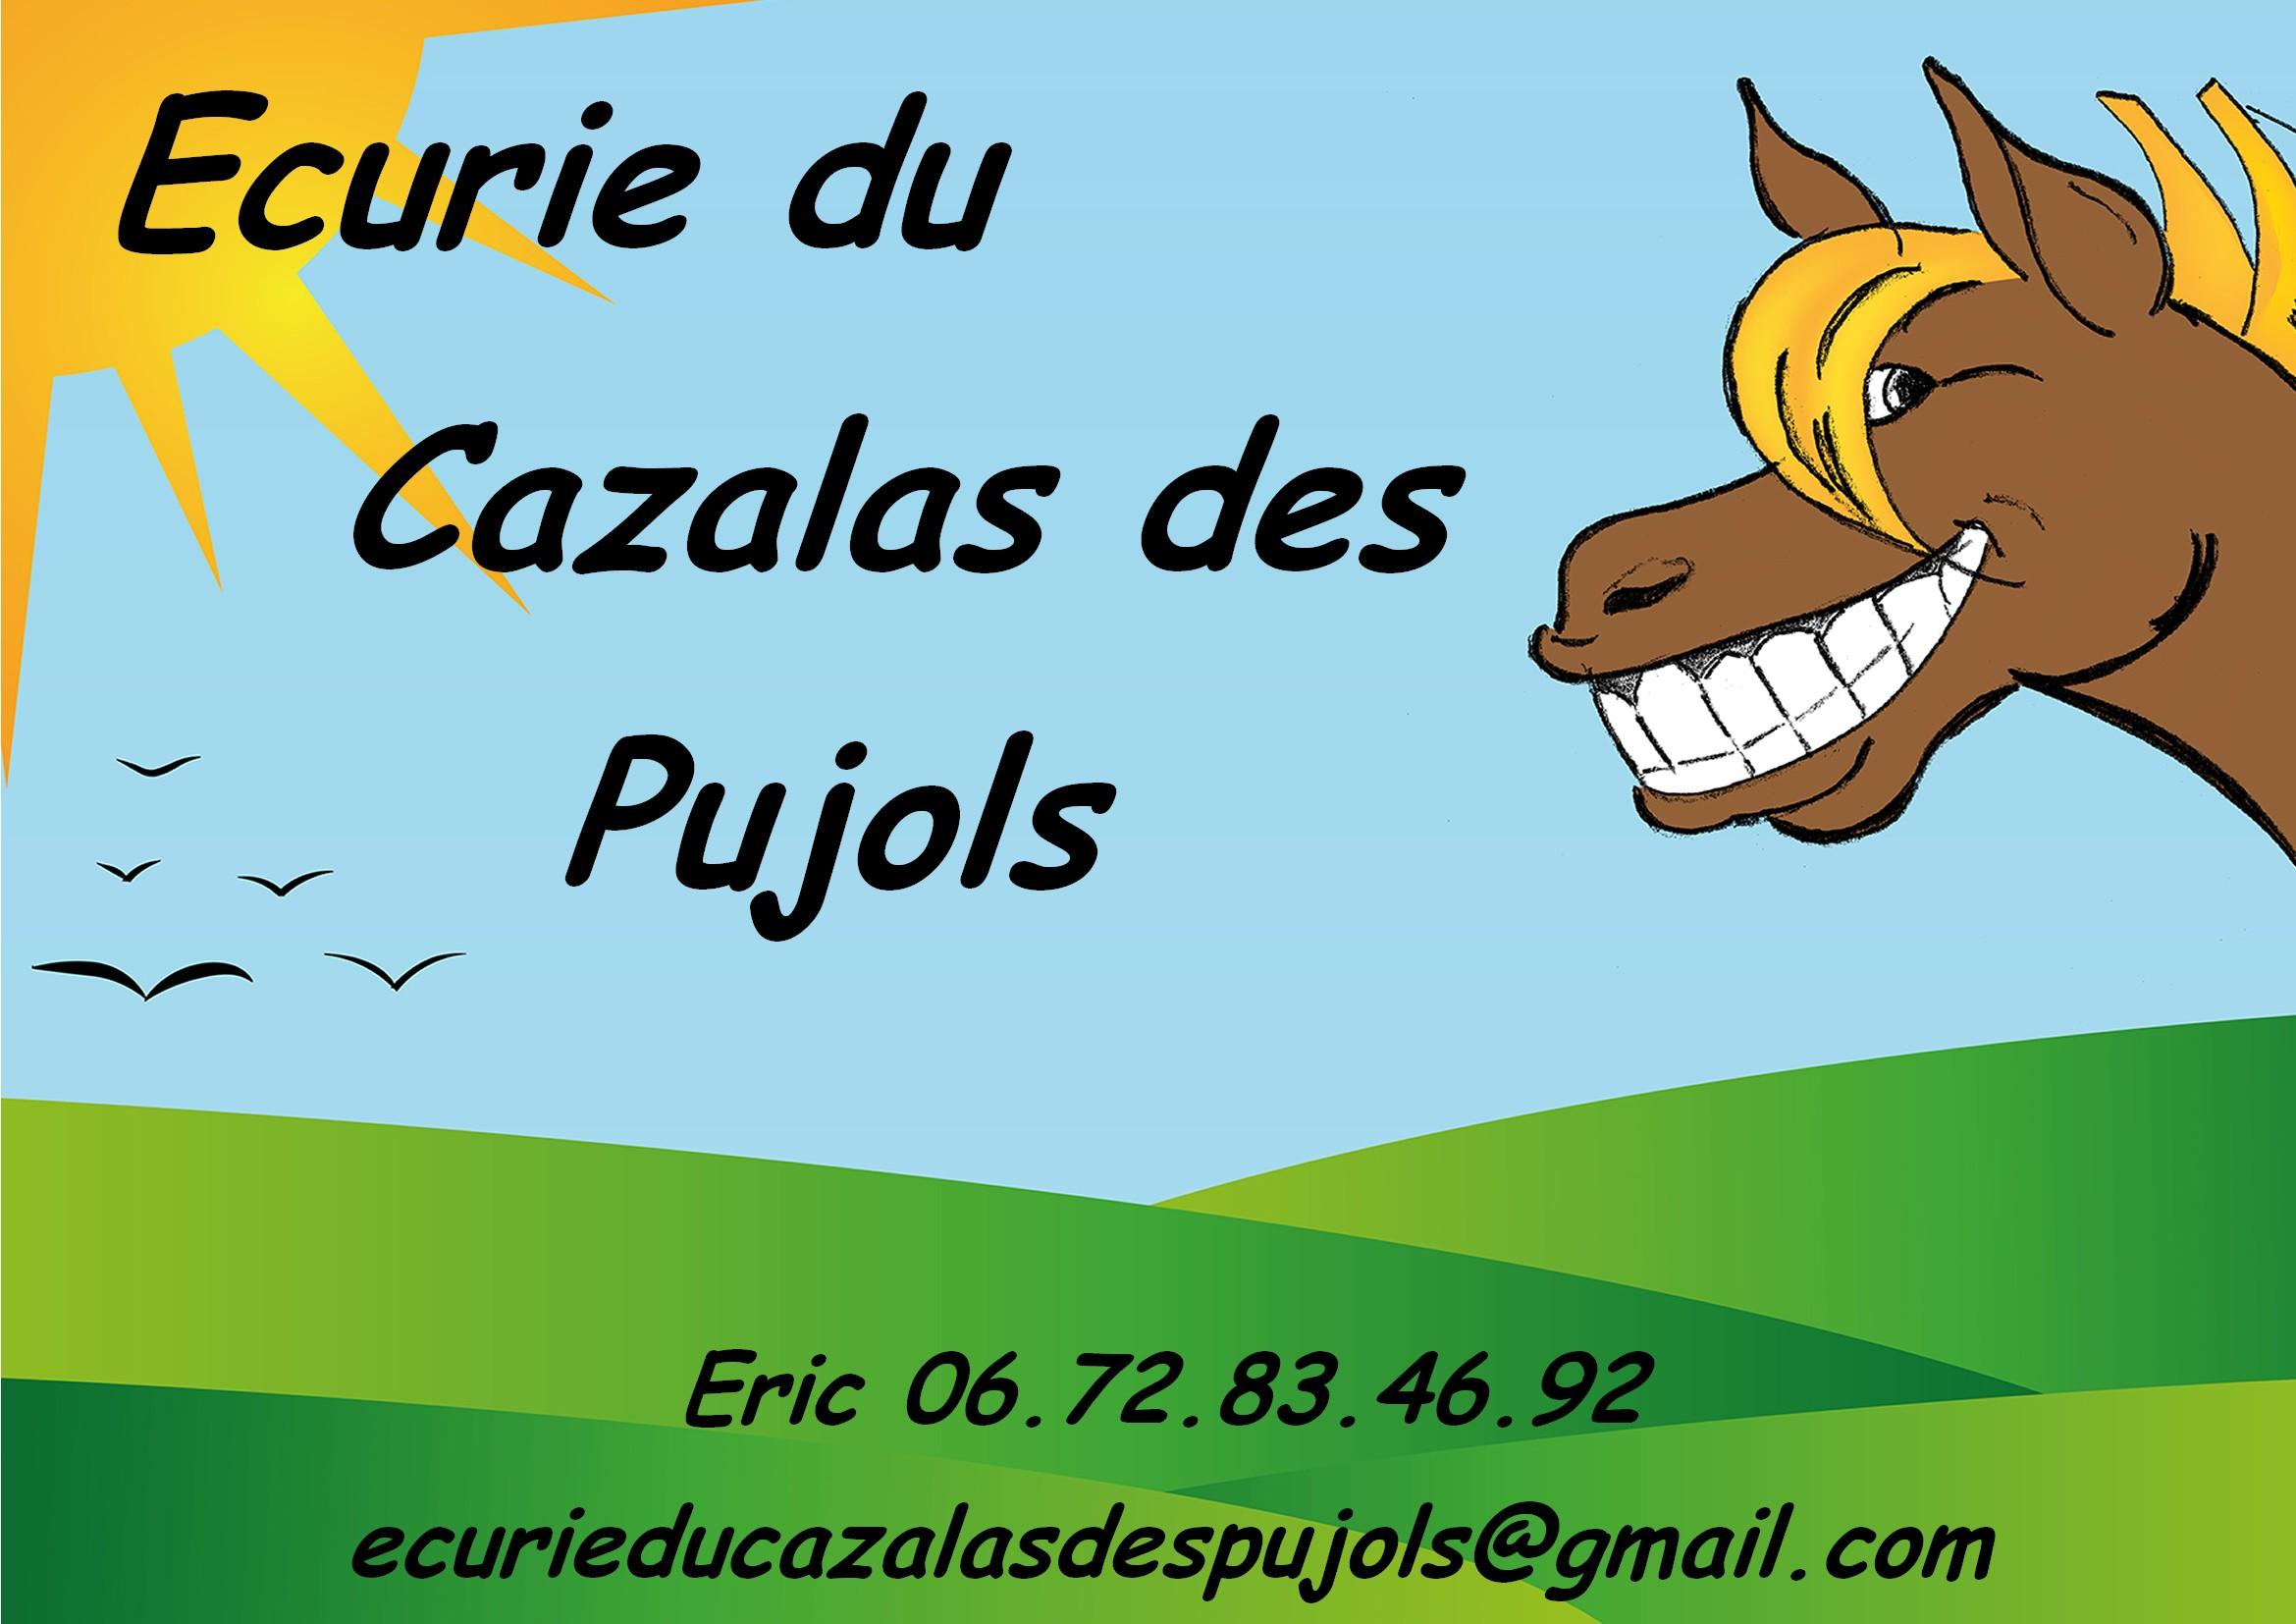 photo de Les Écuries du Cazalas